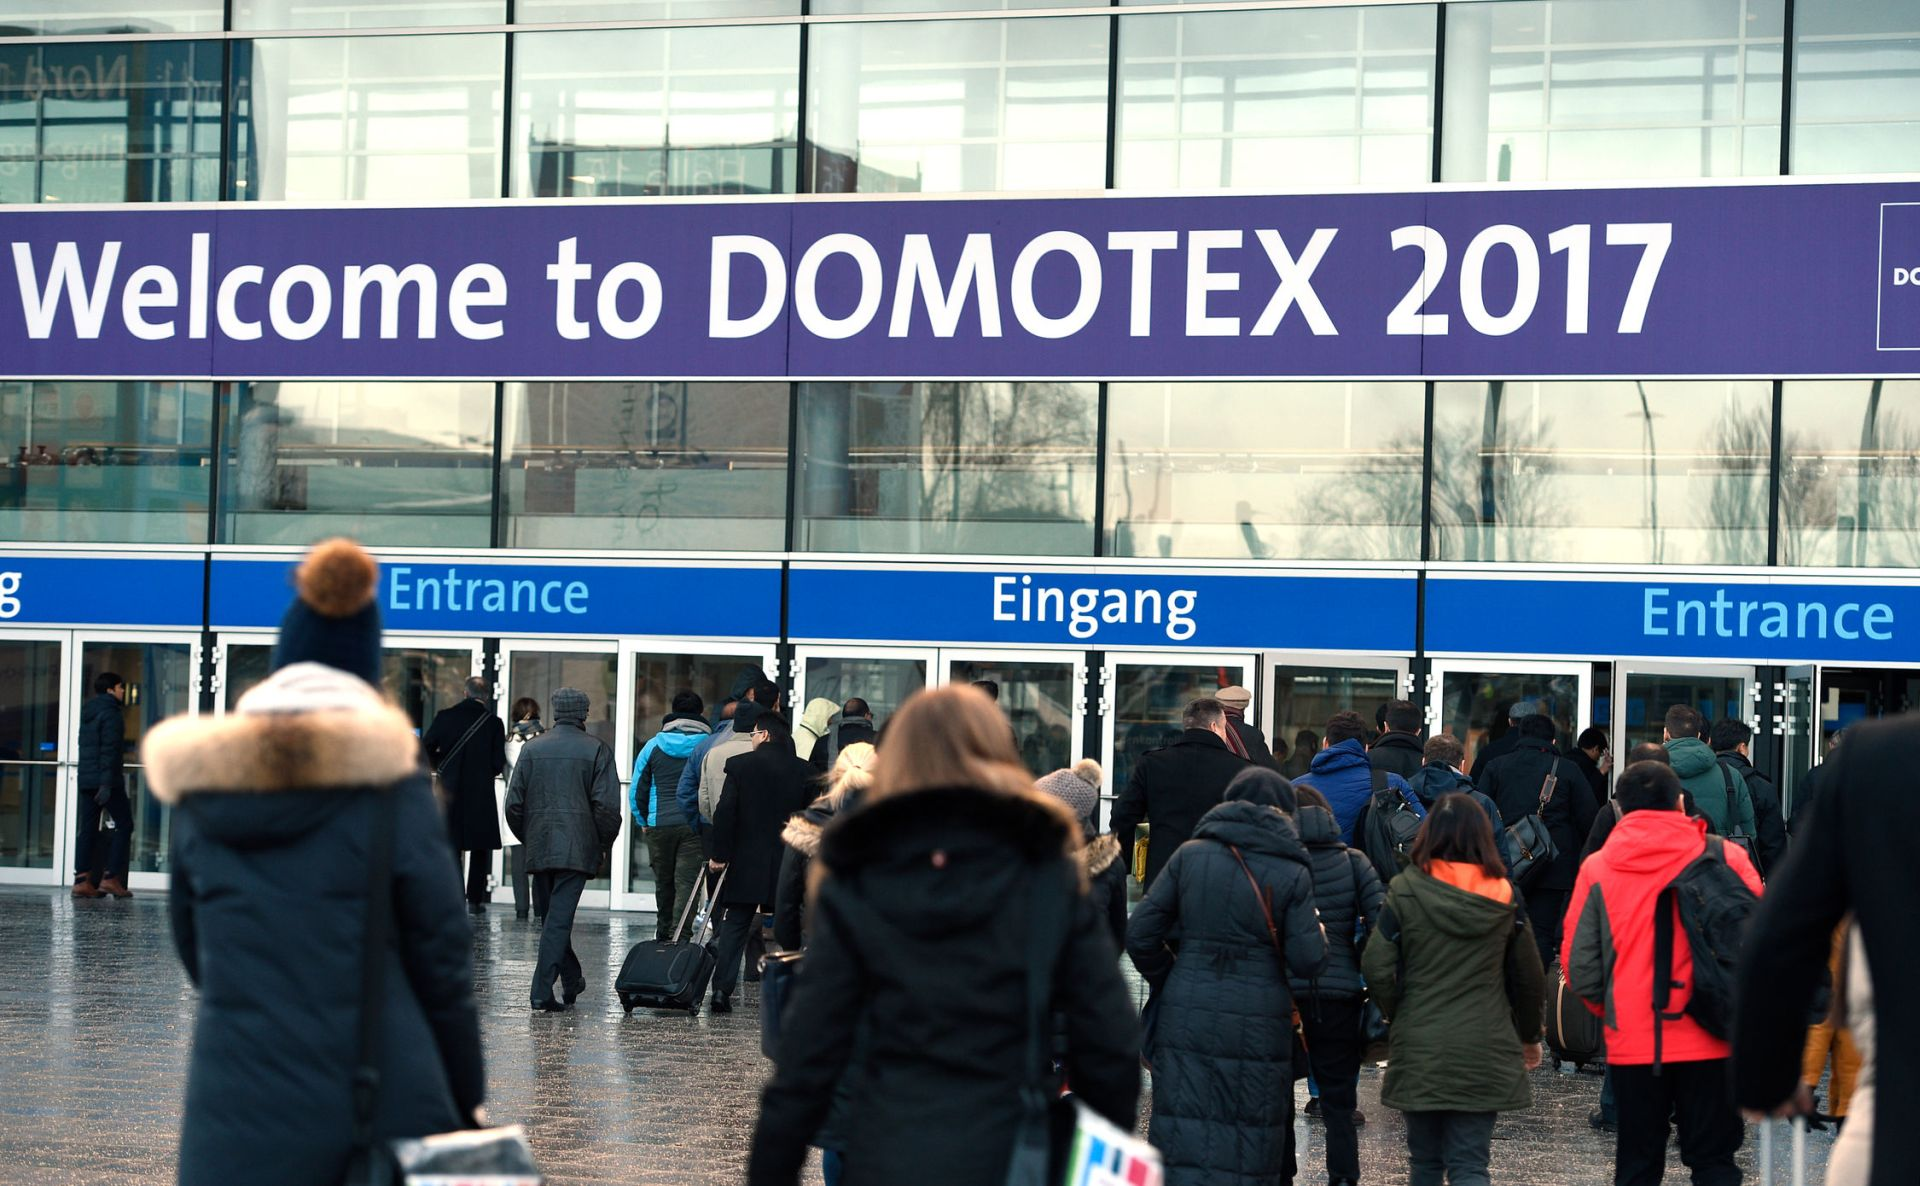 messe_hannover_domotex_entrance